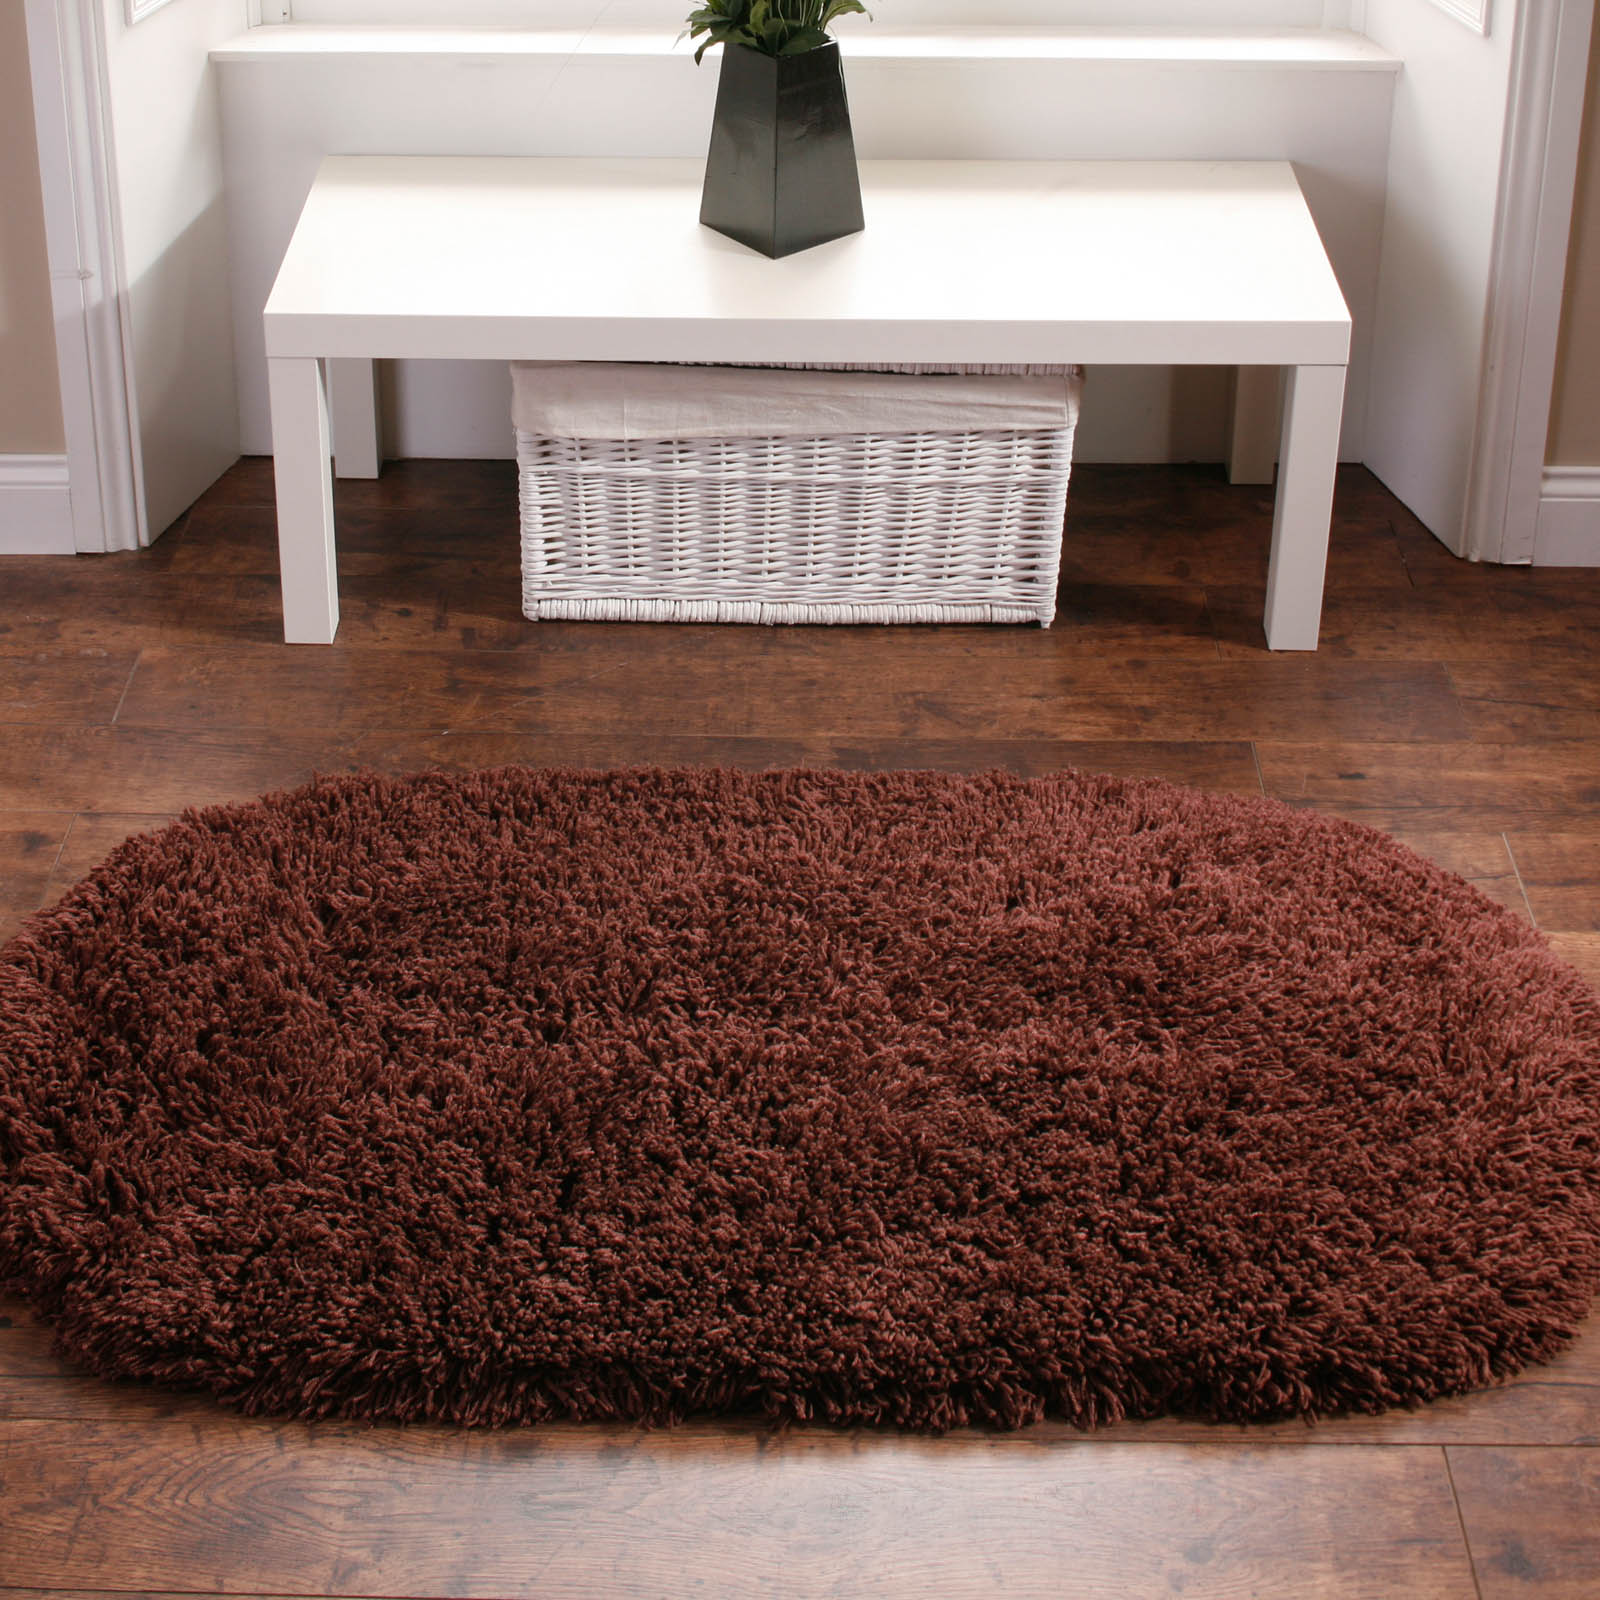 Rainbow Shaggy Washable Rugs in Chocolate Brown